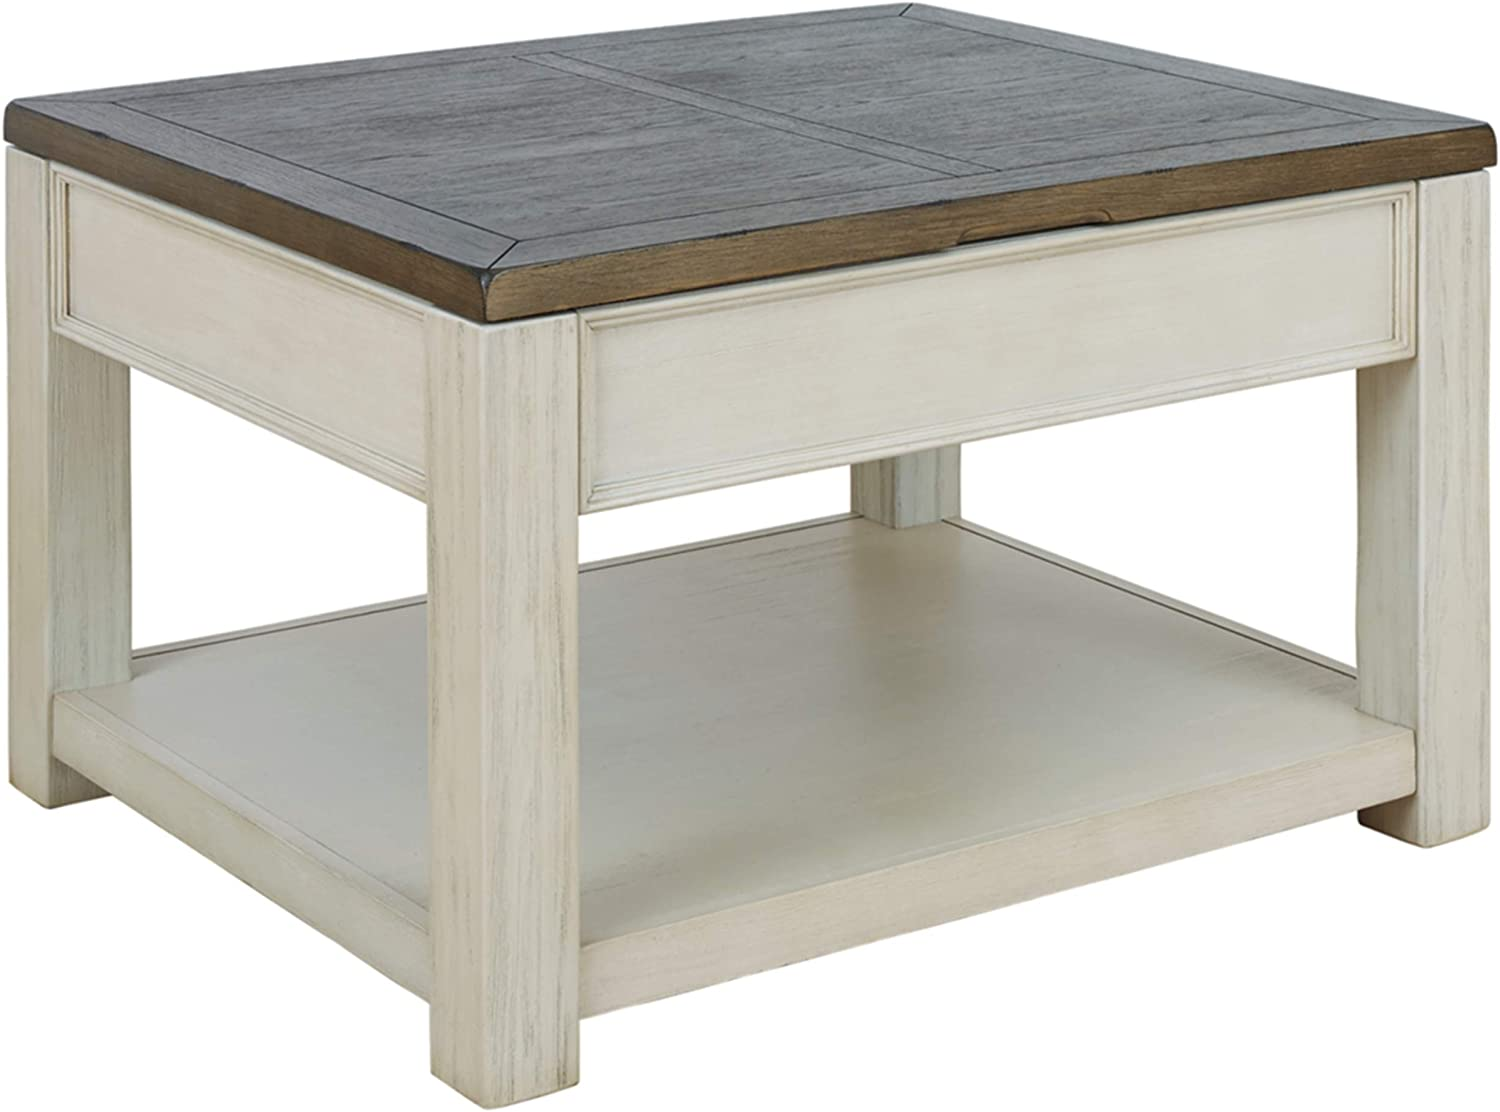 Signature Design by Ashley - Bolanburg Lift Top Cocktail Table w/ Fixed Shelf, Brown/White